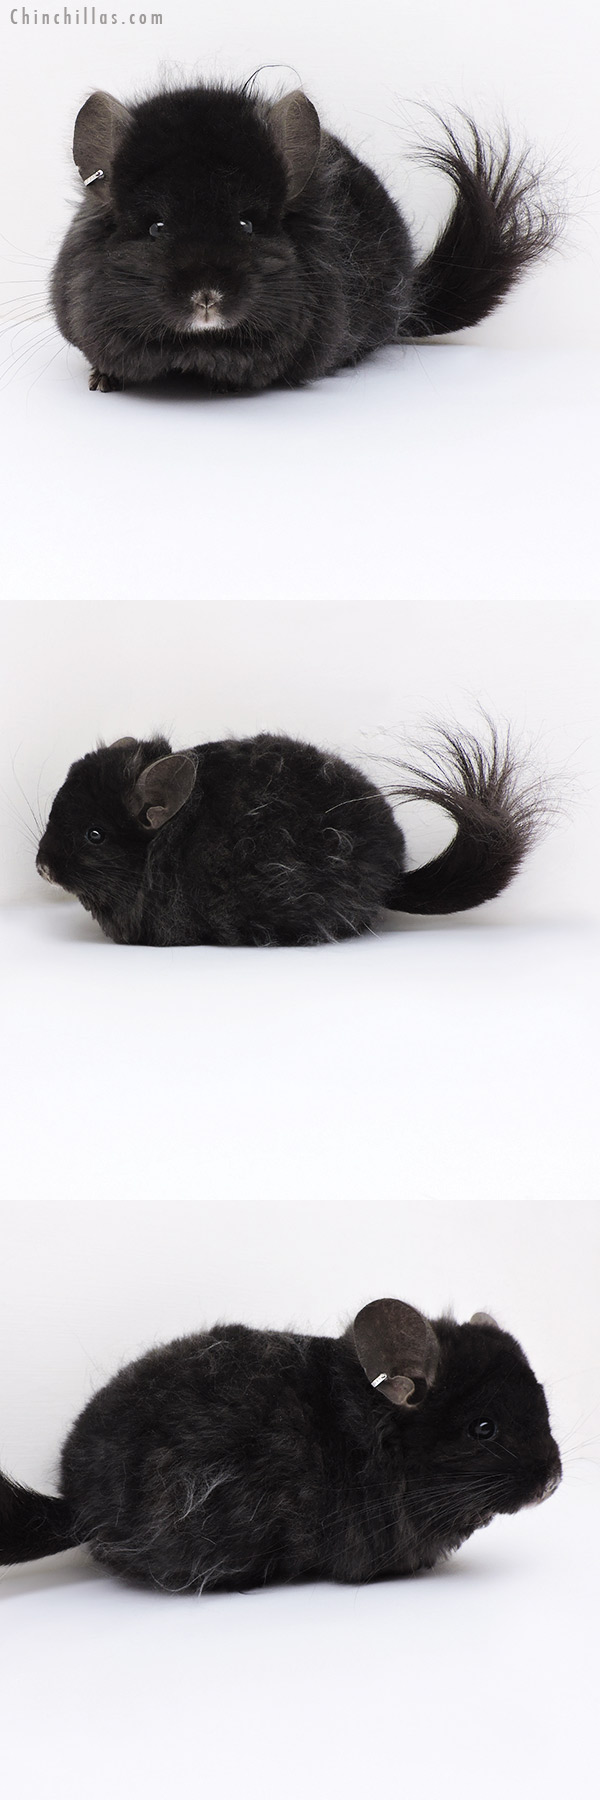 19136 Ebony CCCU Royal Imperial Angora Male Chinchilla